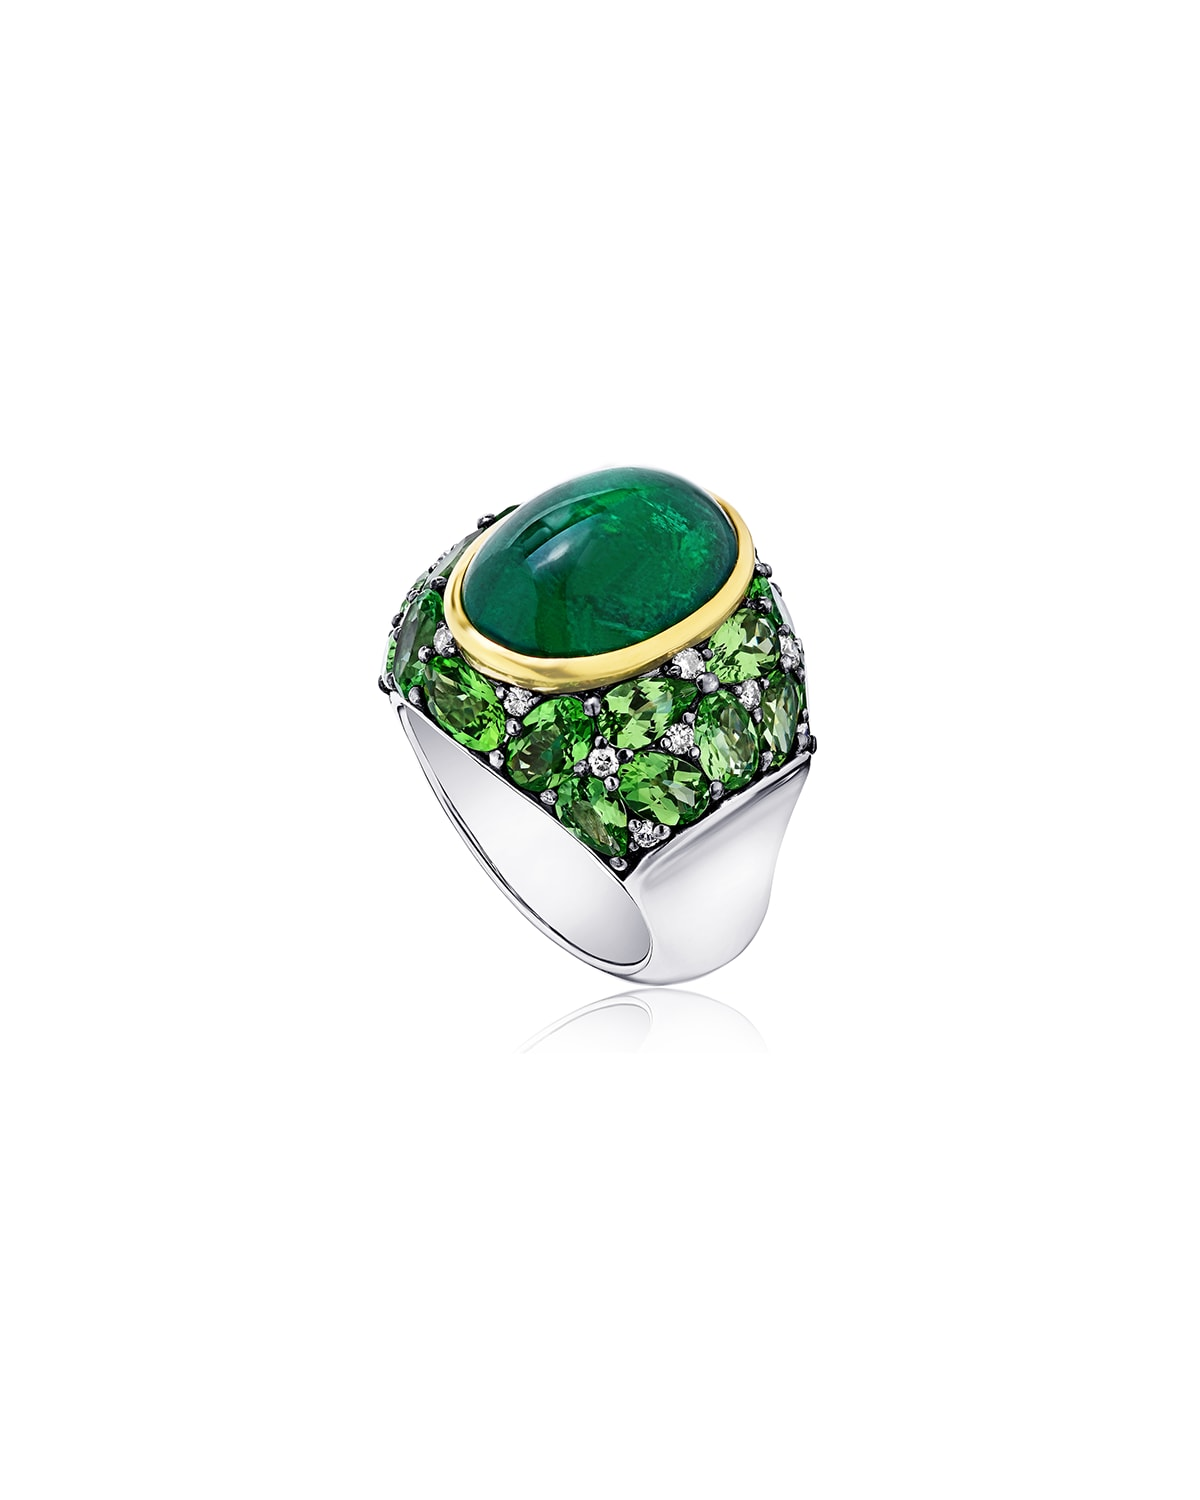 Emerald Oval Ring with Tsavorite and Diamonds, Size 7